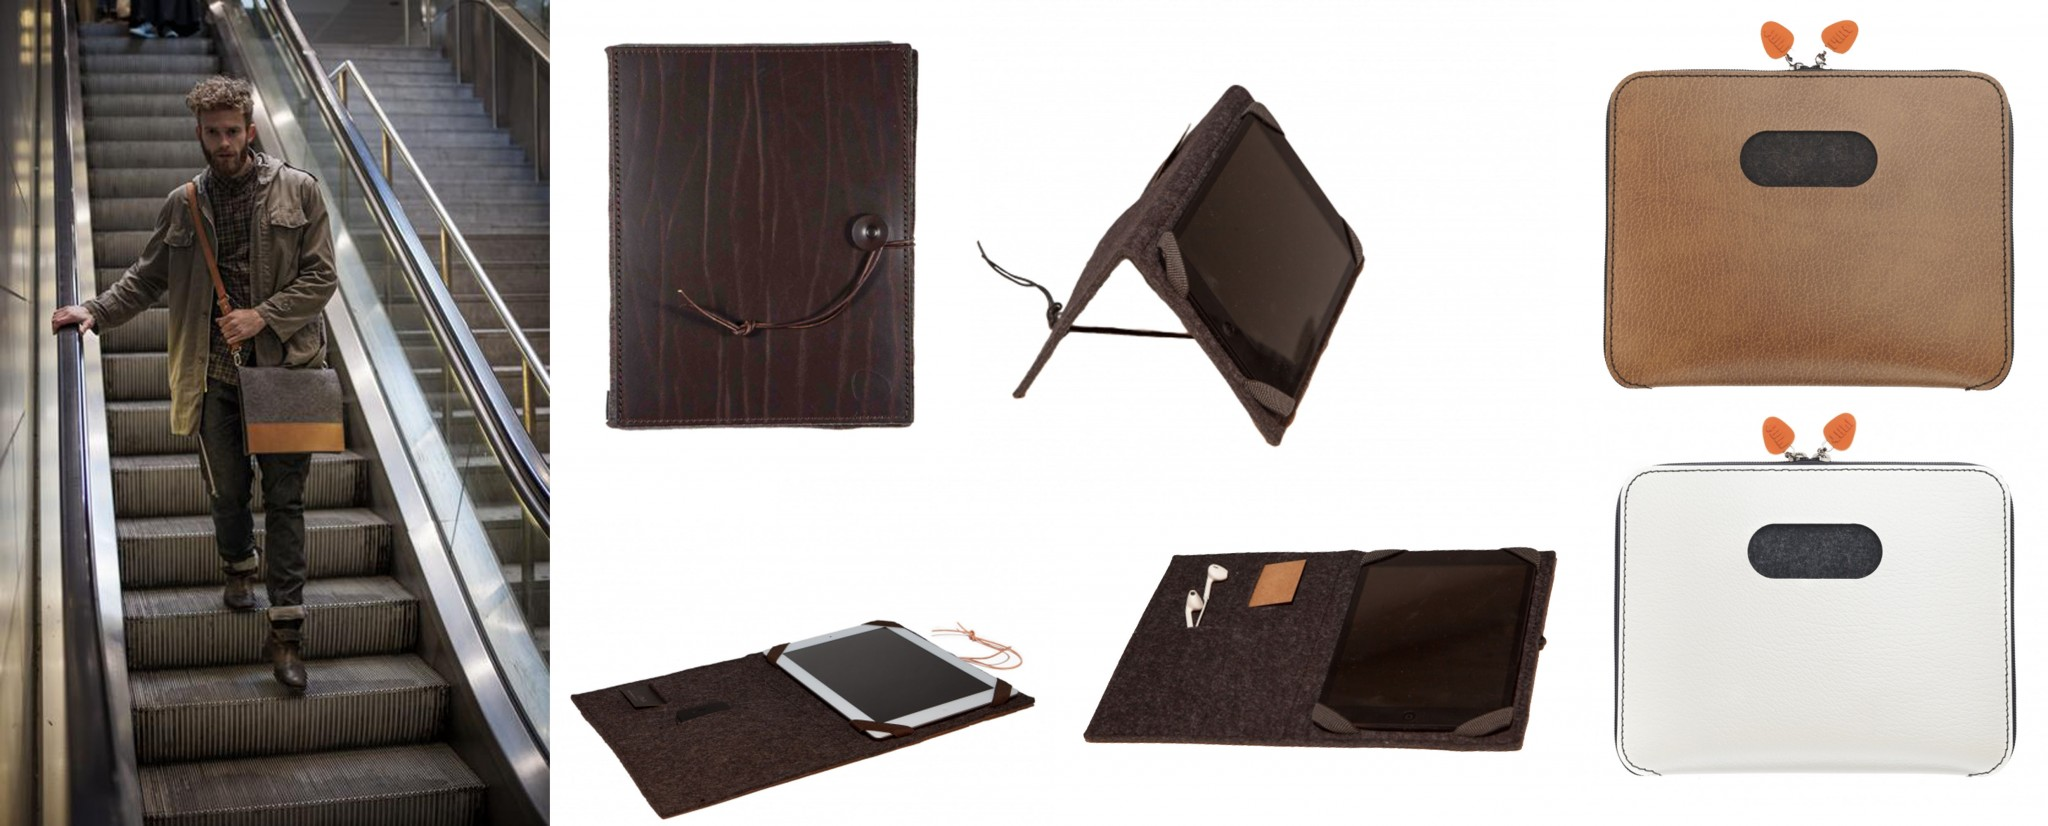 linddna-tasker-ipad-sleeves-laptop-cover-bags-laeder